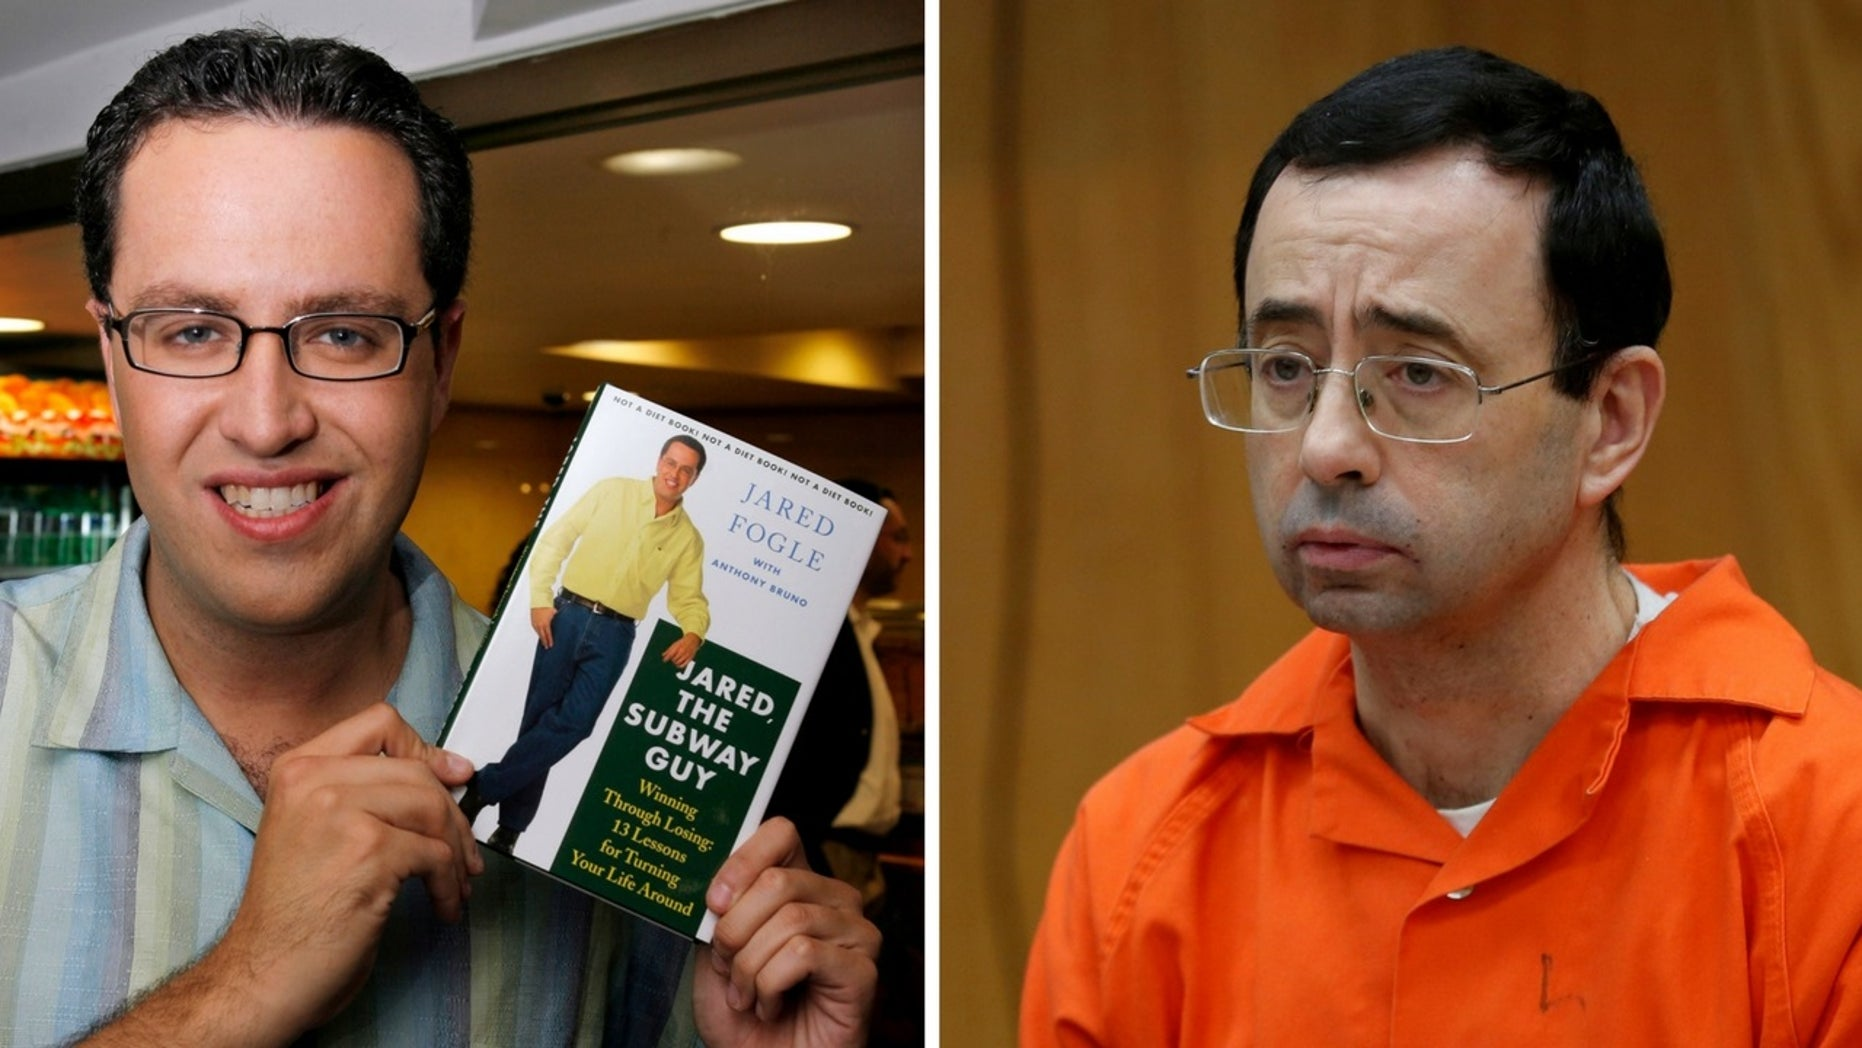 Jared Fogle compared his crimes to Larry Nassar's as a way to reduce his prison sentence.